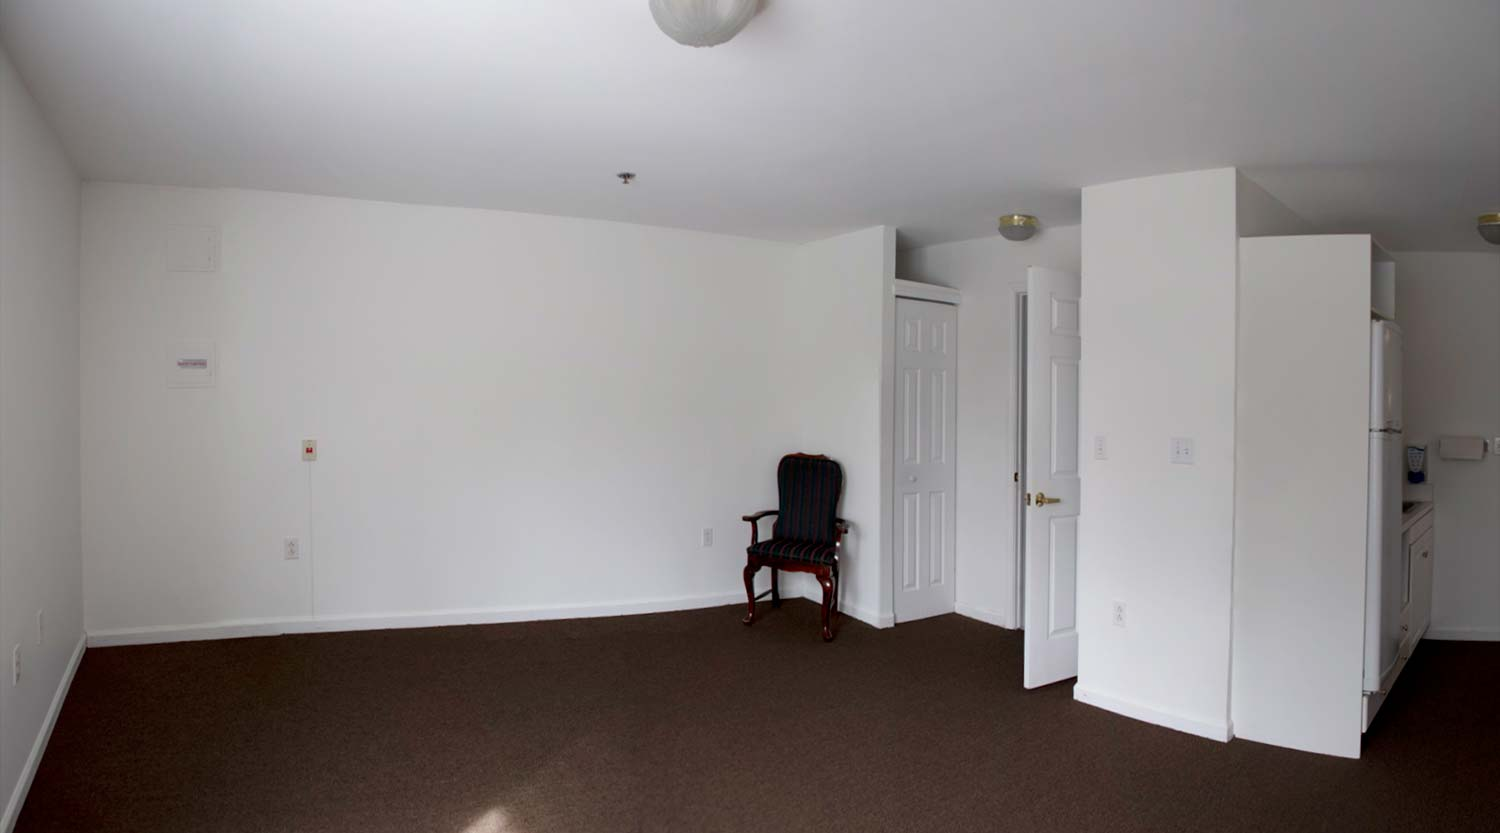 An empty apartment ready to receive a new resident.